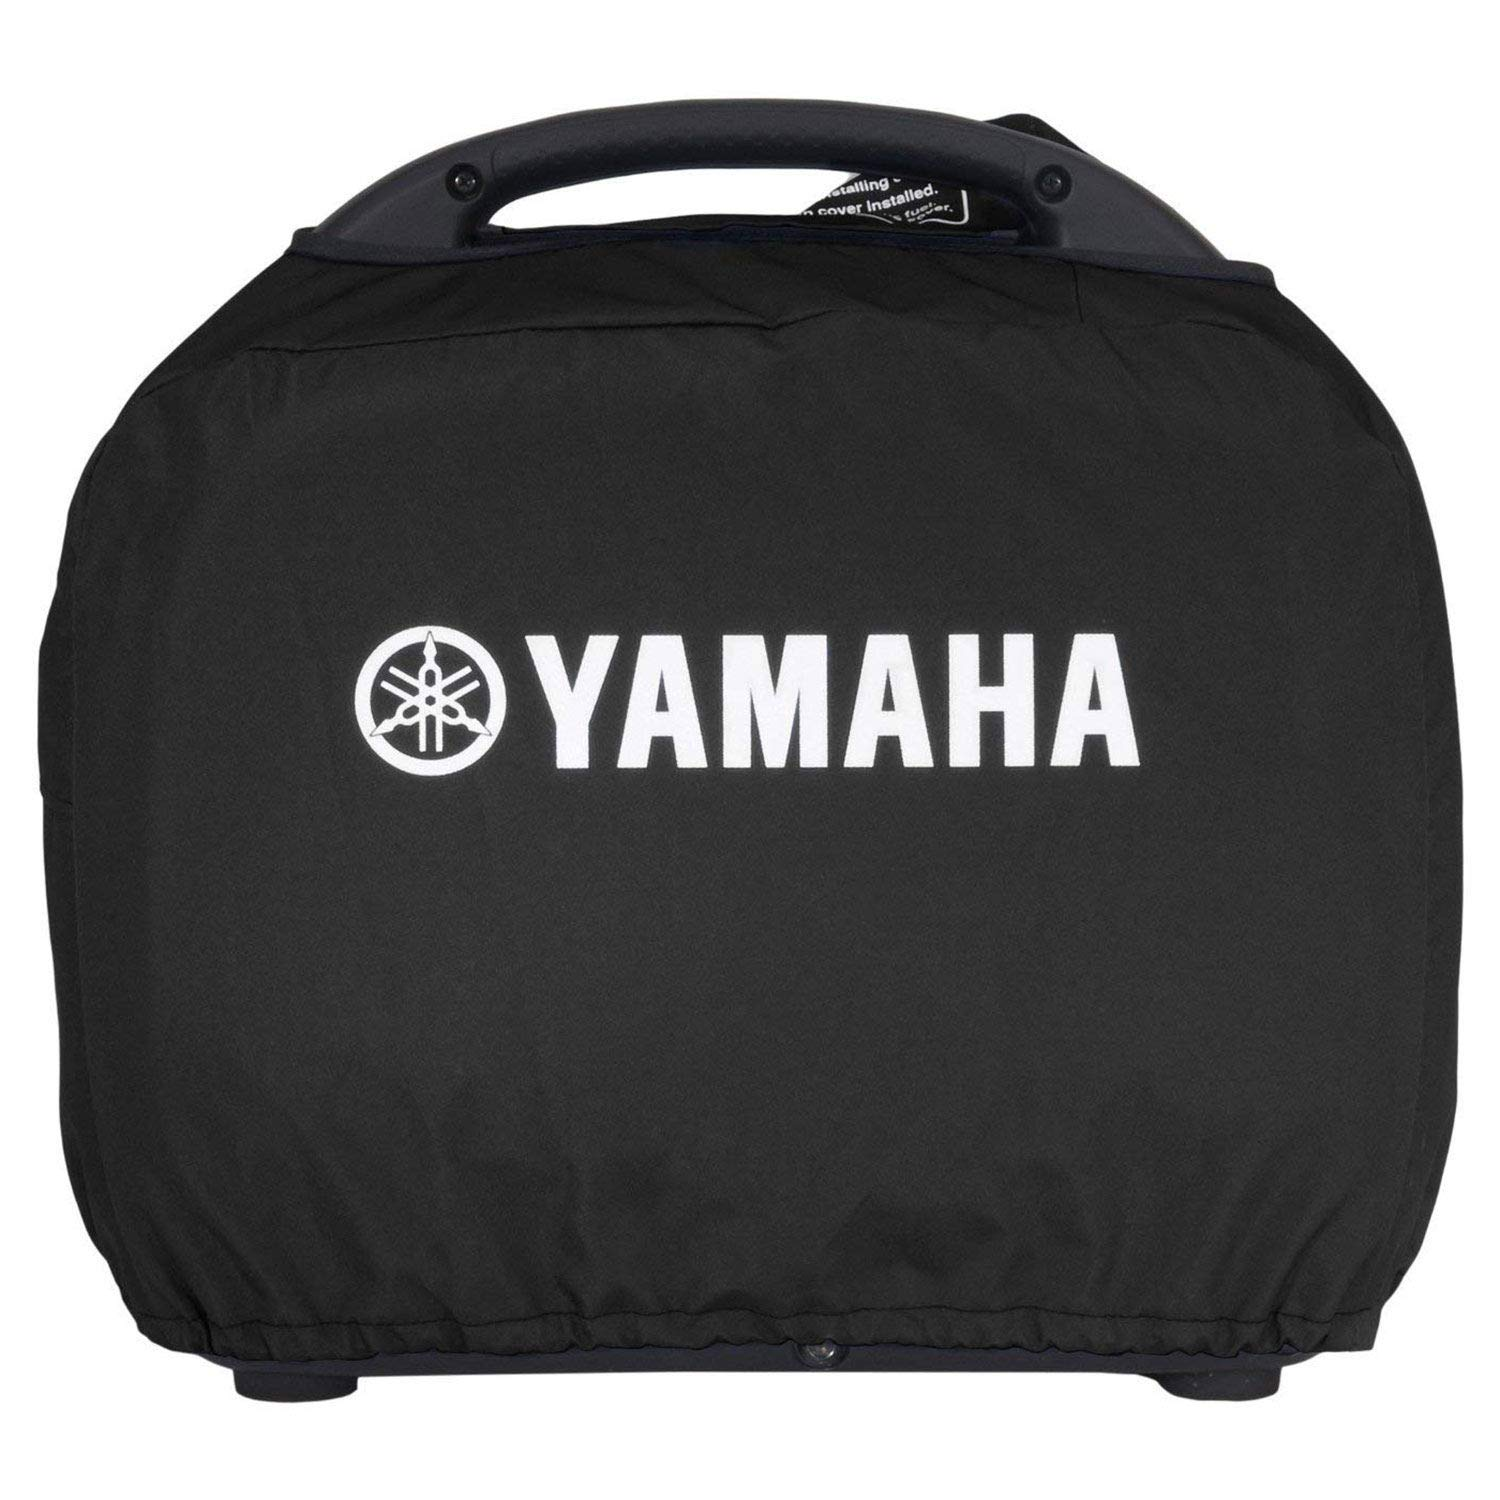 Generator Cover for EF2000iS / EF2000iSv2 / EF2000iSH, Lot of 1 by YAMAHA